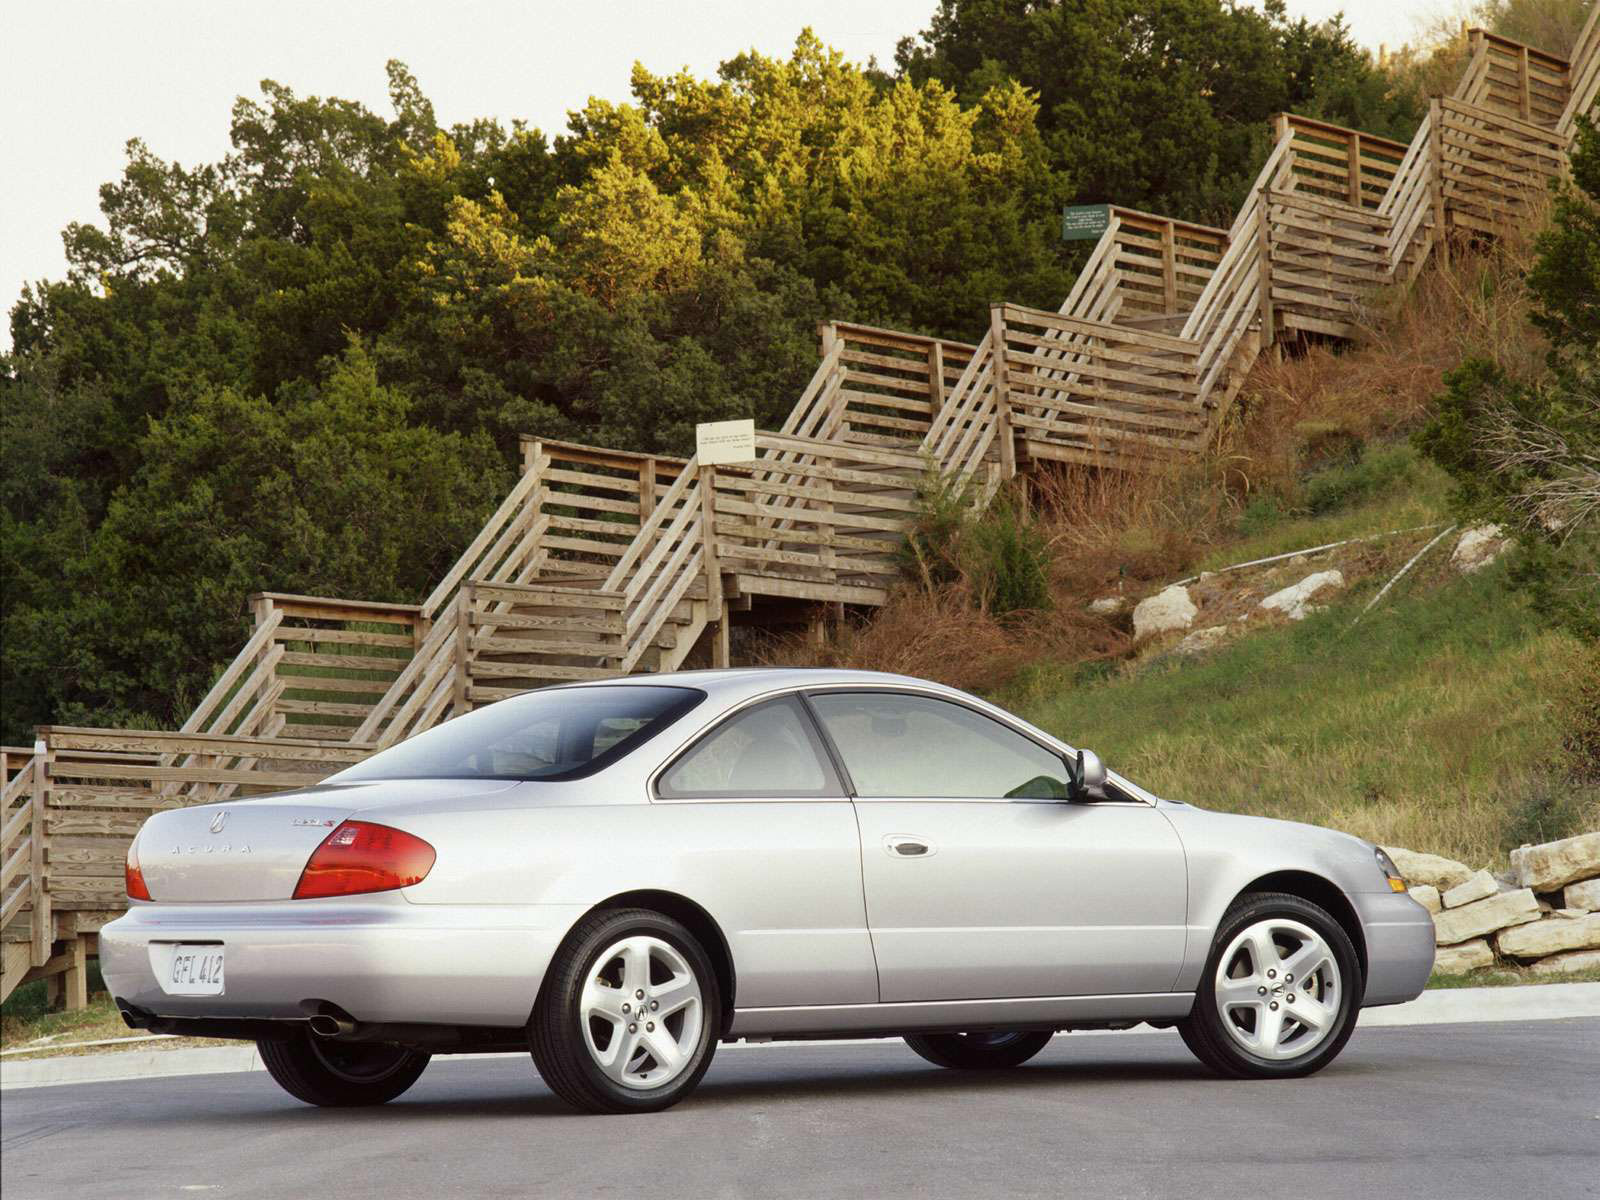 small resolution of 2001 acura 3 2 cl type s car desktop wallpapers 1600x1200 pixels torrance